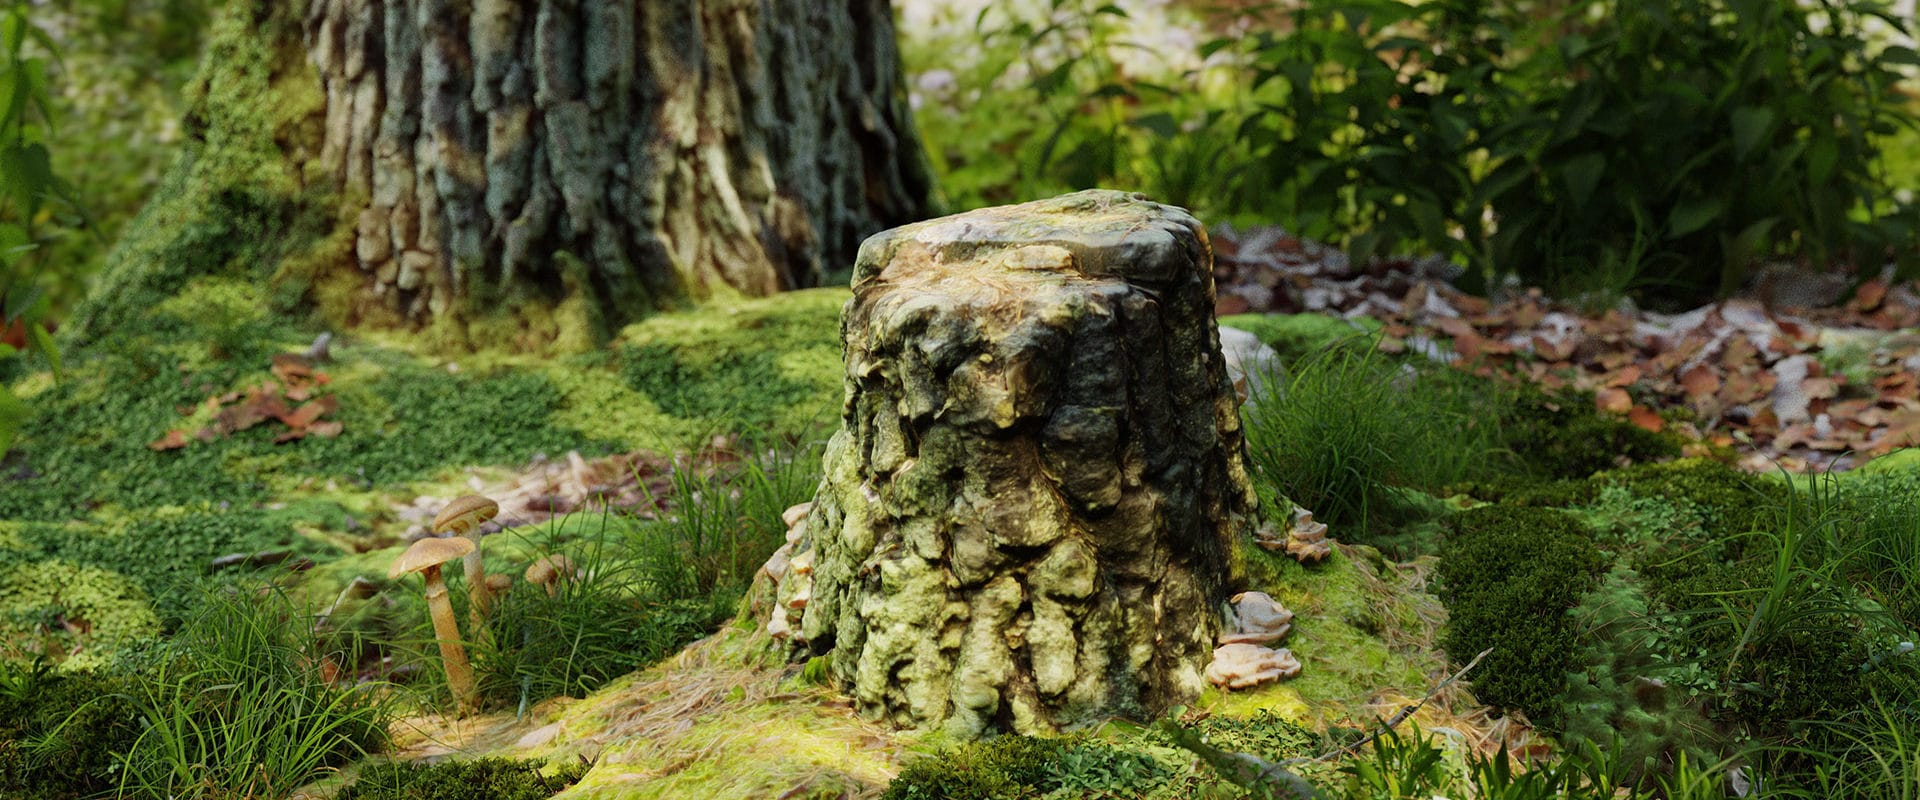 Tree_stump_6_13q